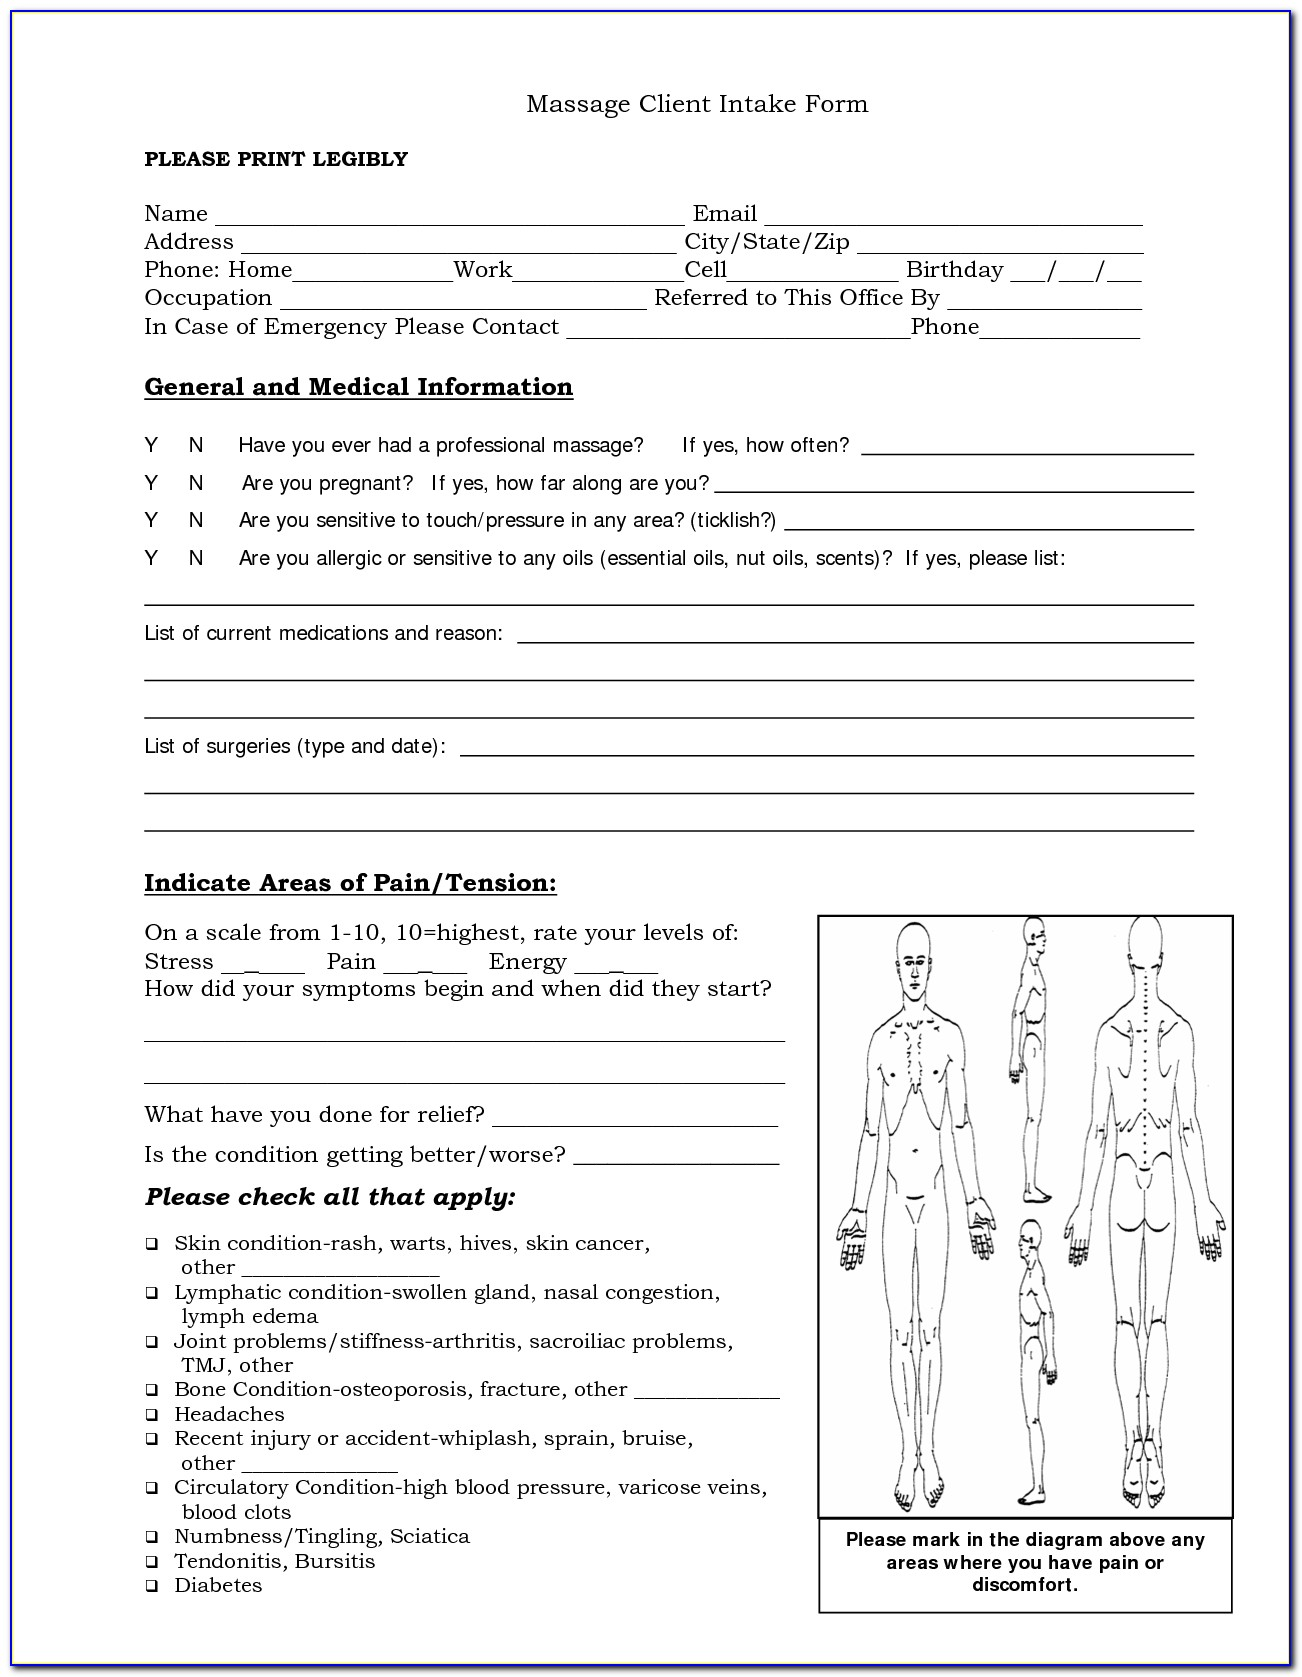 Sample Massage Client Intake Forms